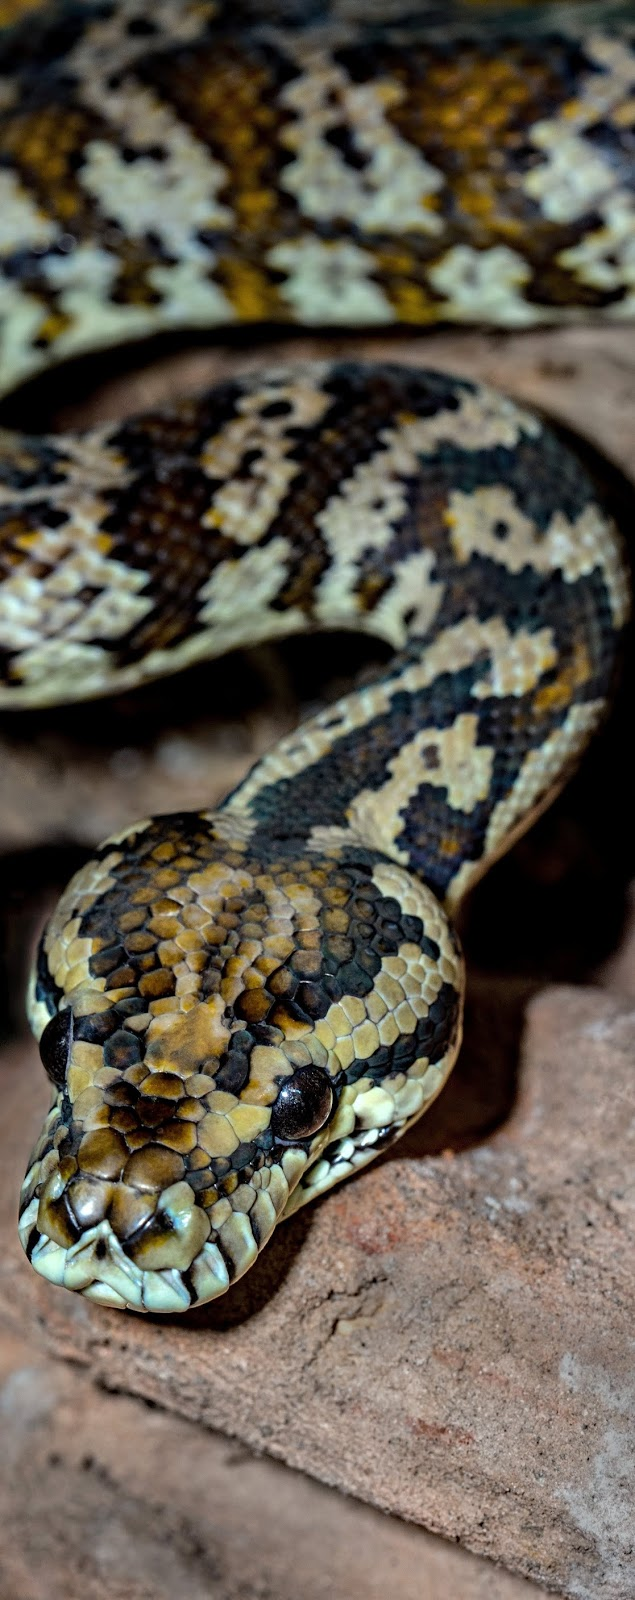 Picture of a carpet python.